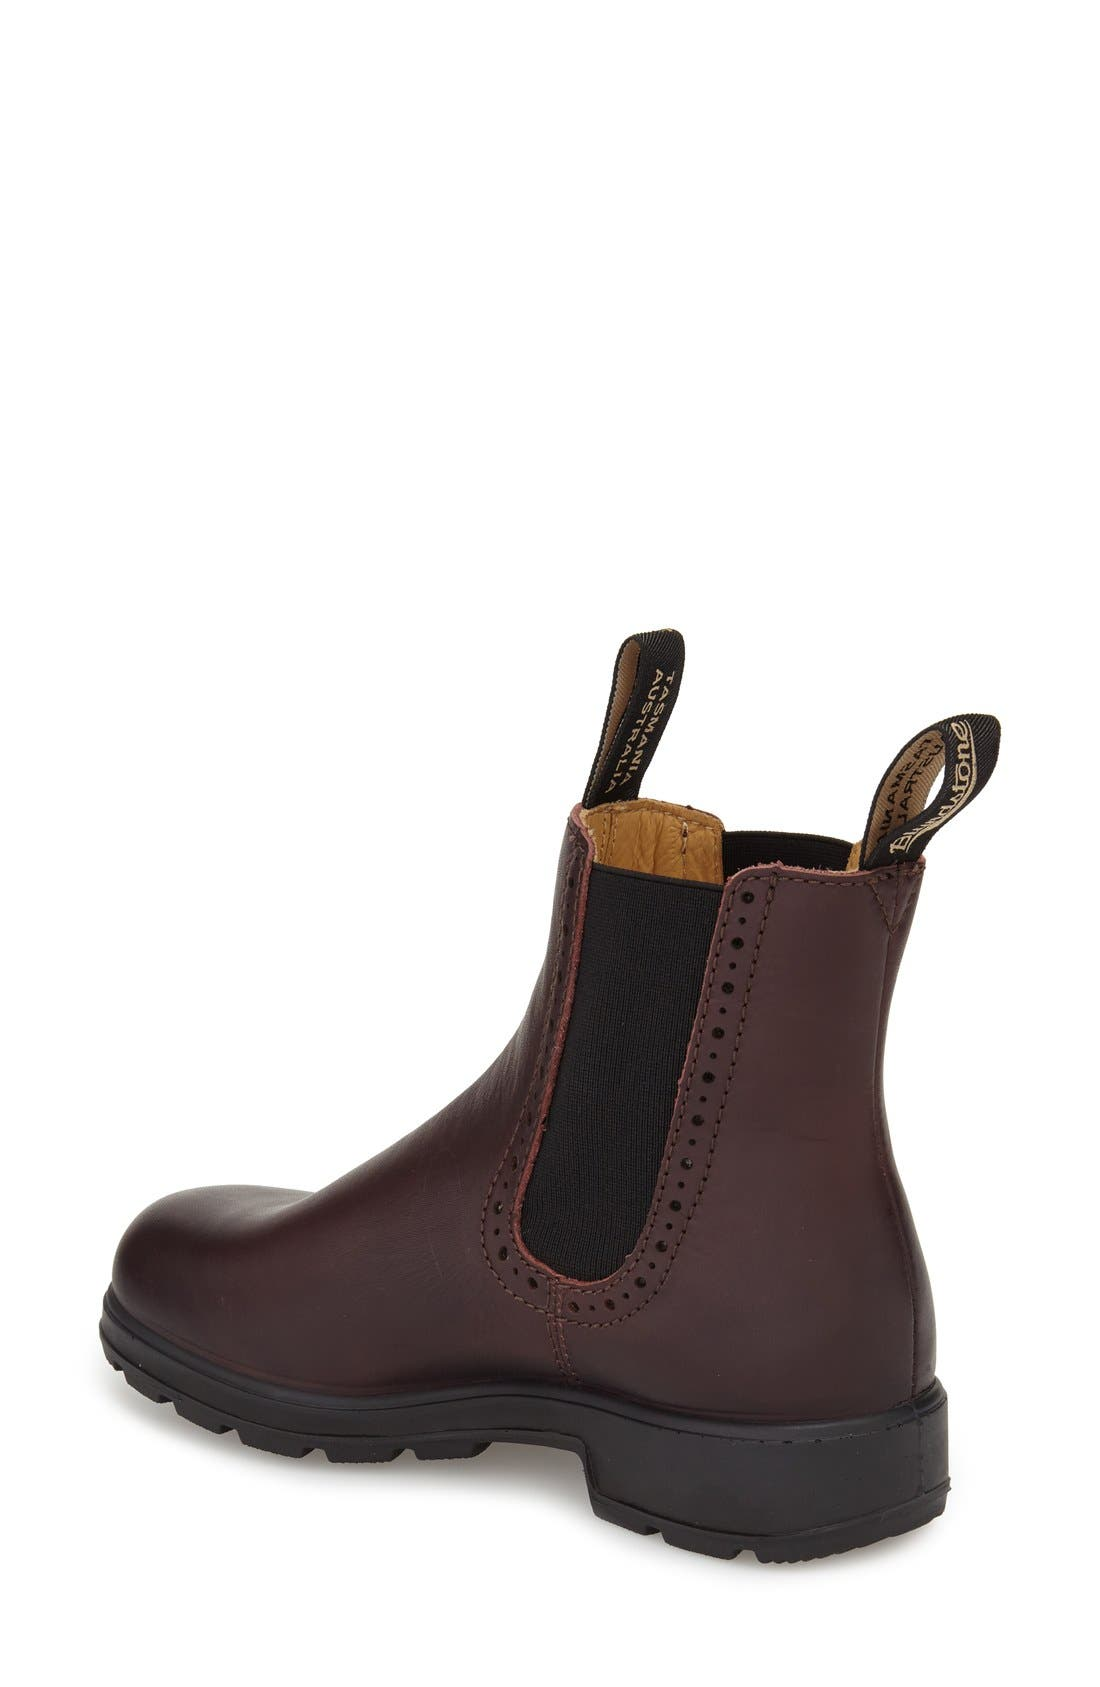 Footwear 'Original Series' Water Resistant Chelsea Boot,                             Alternate thumbnail 2, color,                             Shiraz Leather